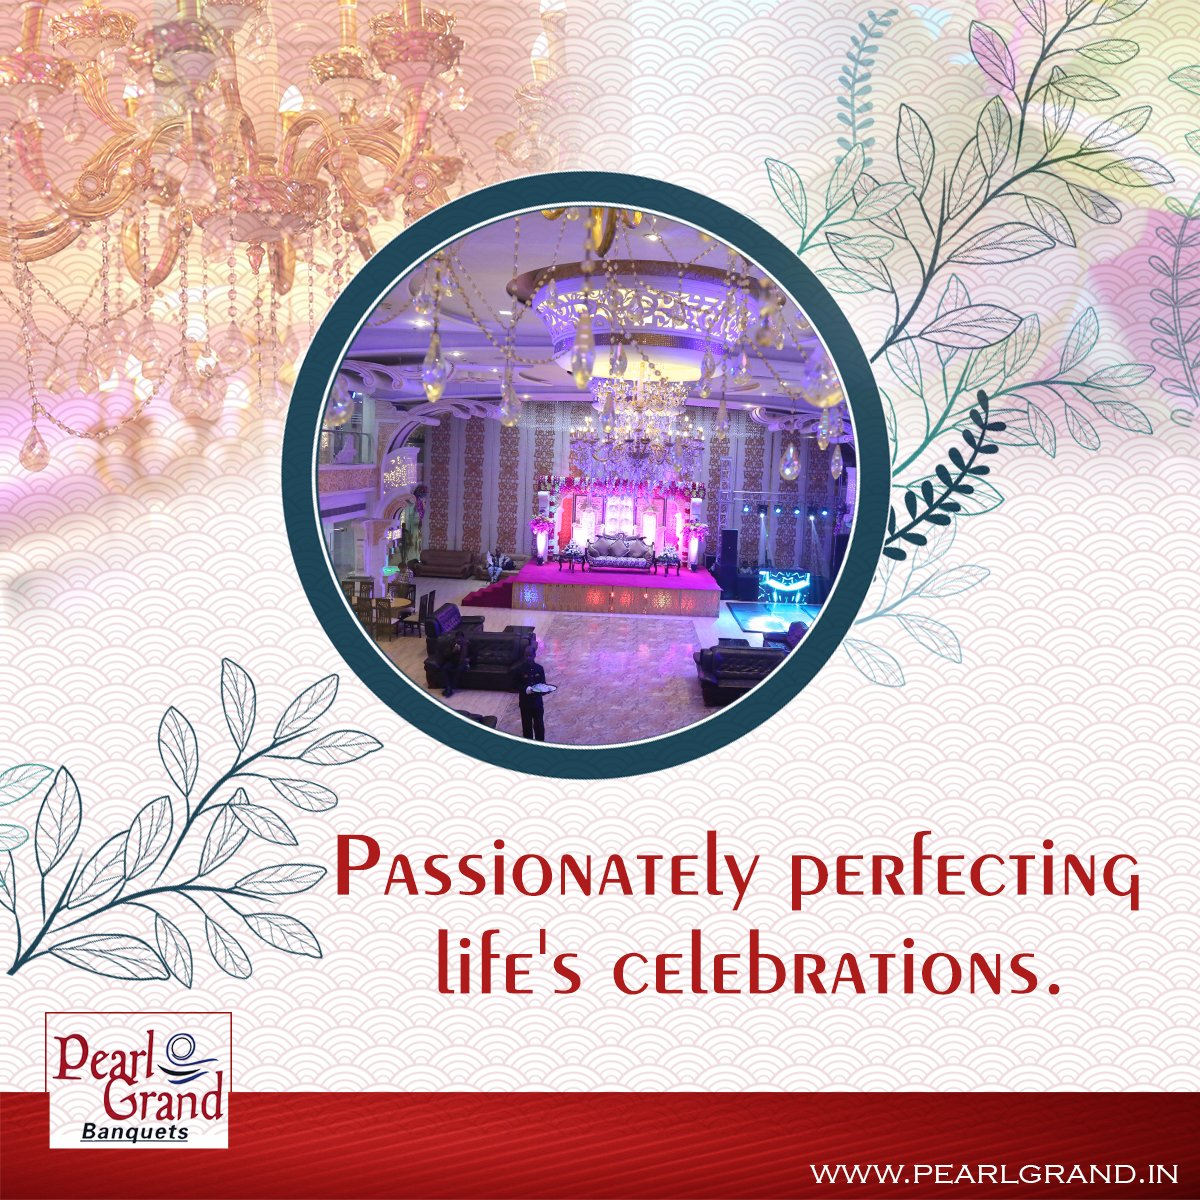 Passionately perfecting life's celebrations. #Banquets #PearlGrand #Weddings #Marriages #PearlGrandBanquets https://t.co/RAguoRdK35